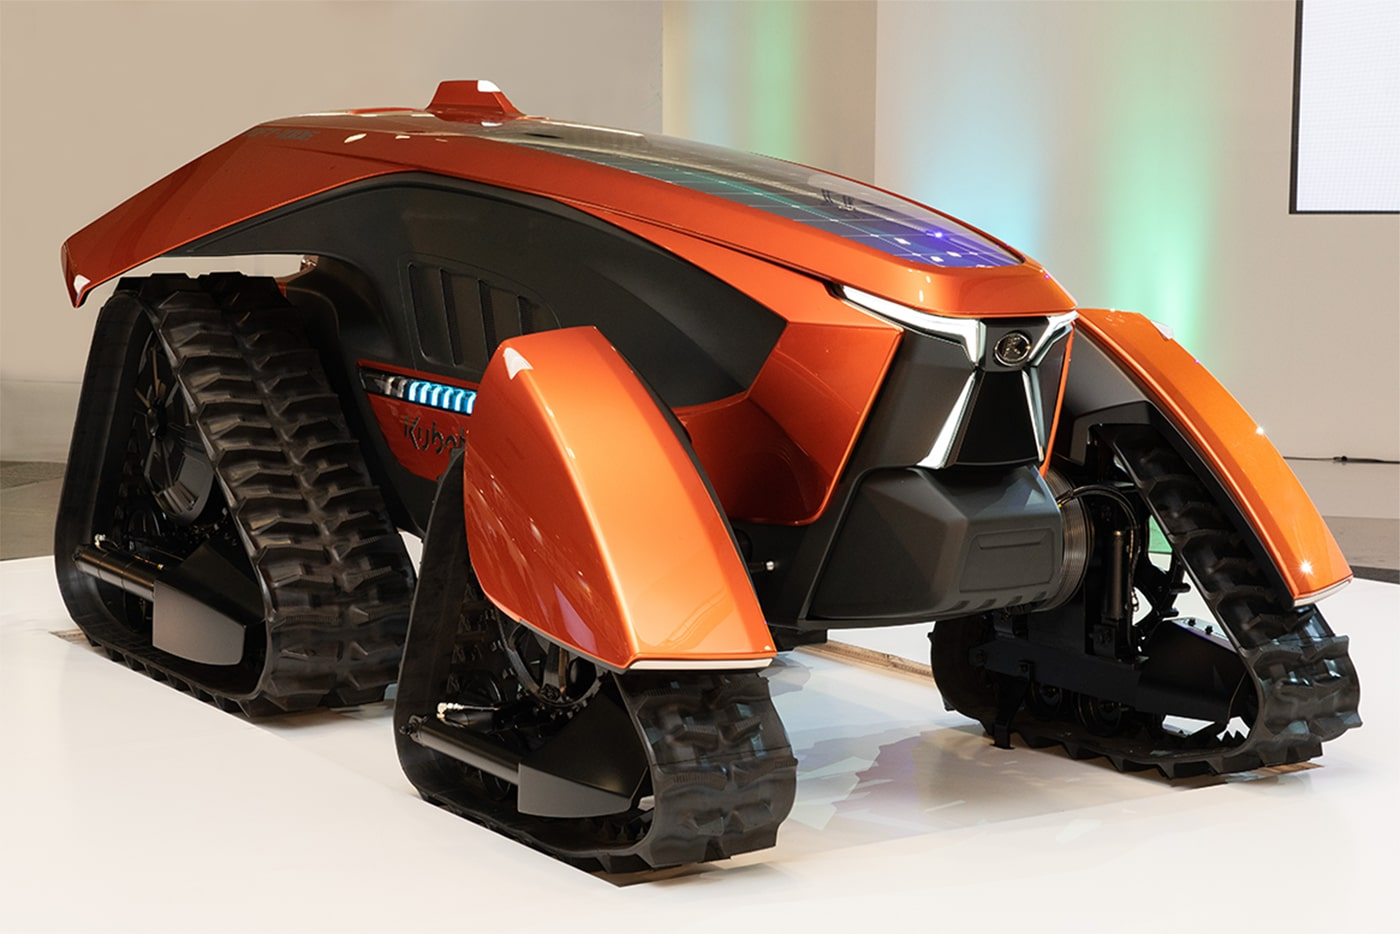 Kubota presents an autonomous, electric concept tractor with AI